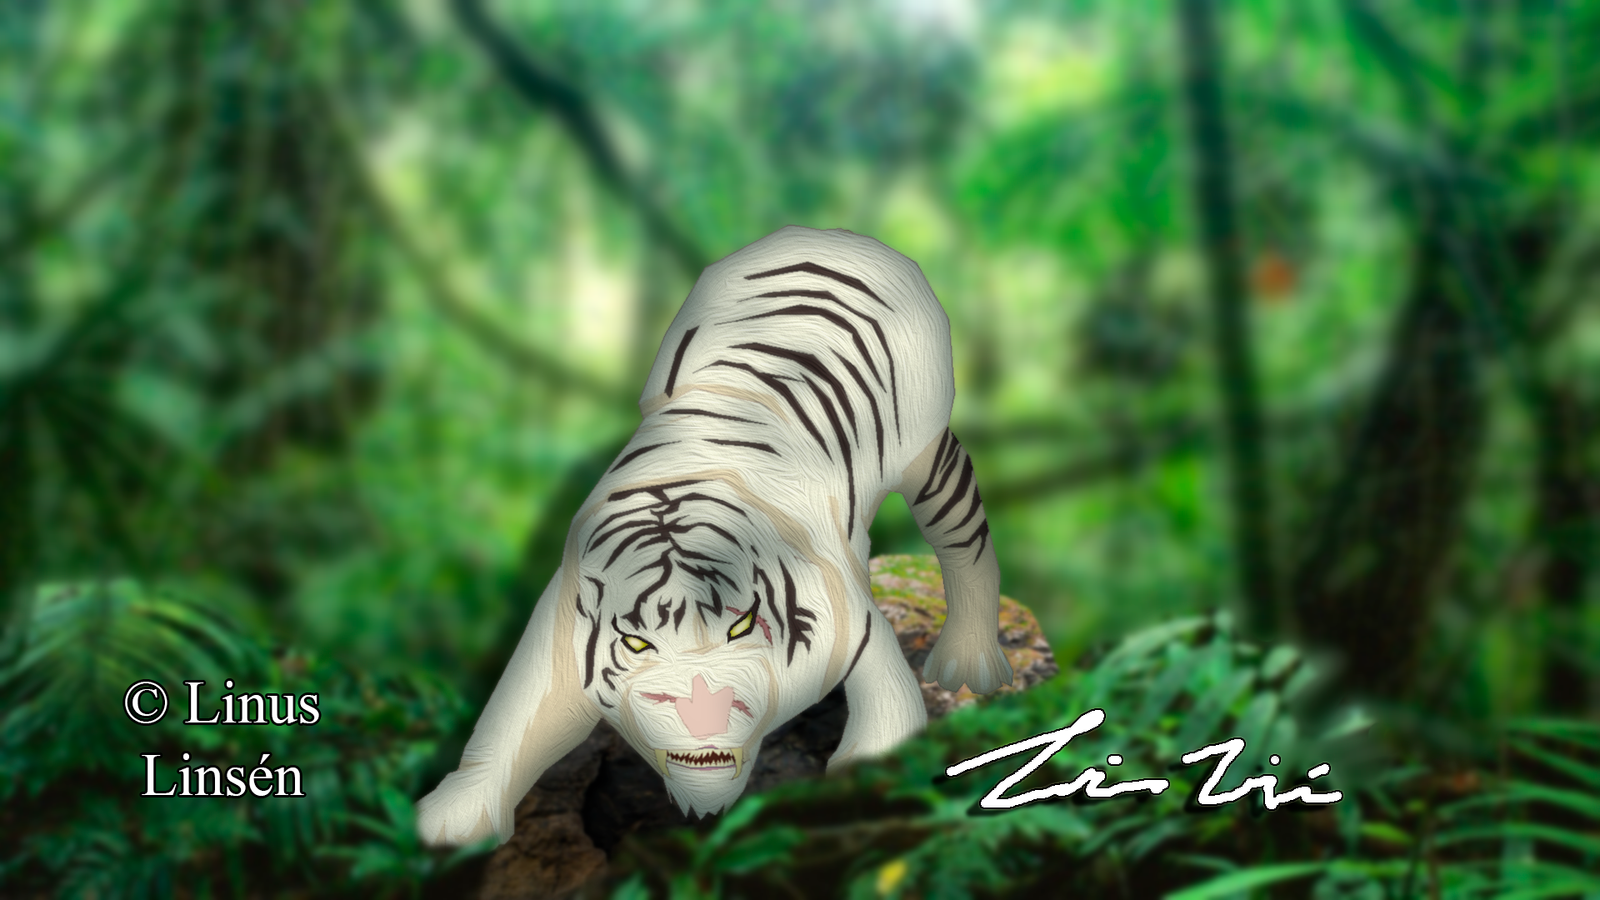 White tiger wallpaper hd 1920x1080p by finnishnerd on deviantart white tiger wallpaper hd 1920x1080p by finnishnerd thecheapjerseys Gallery